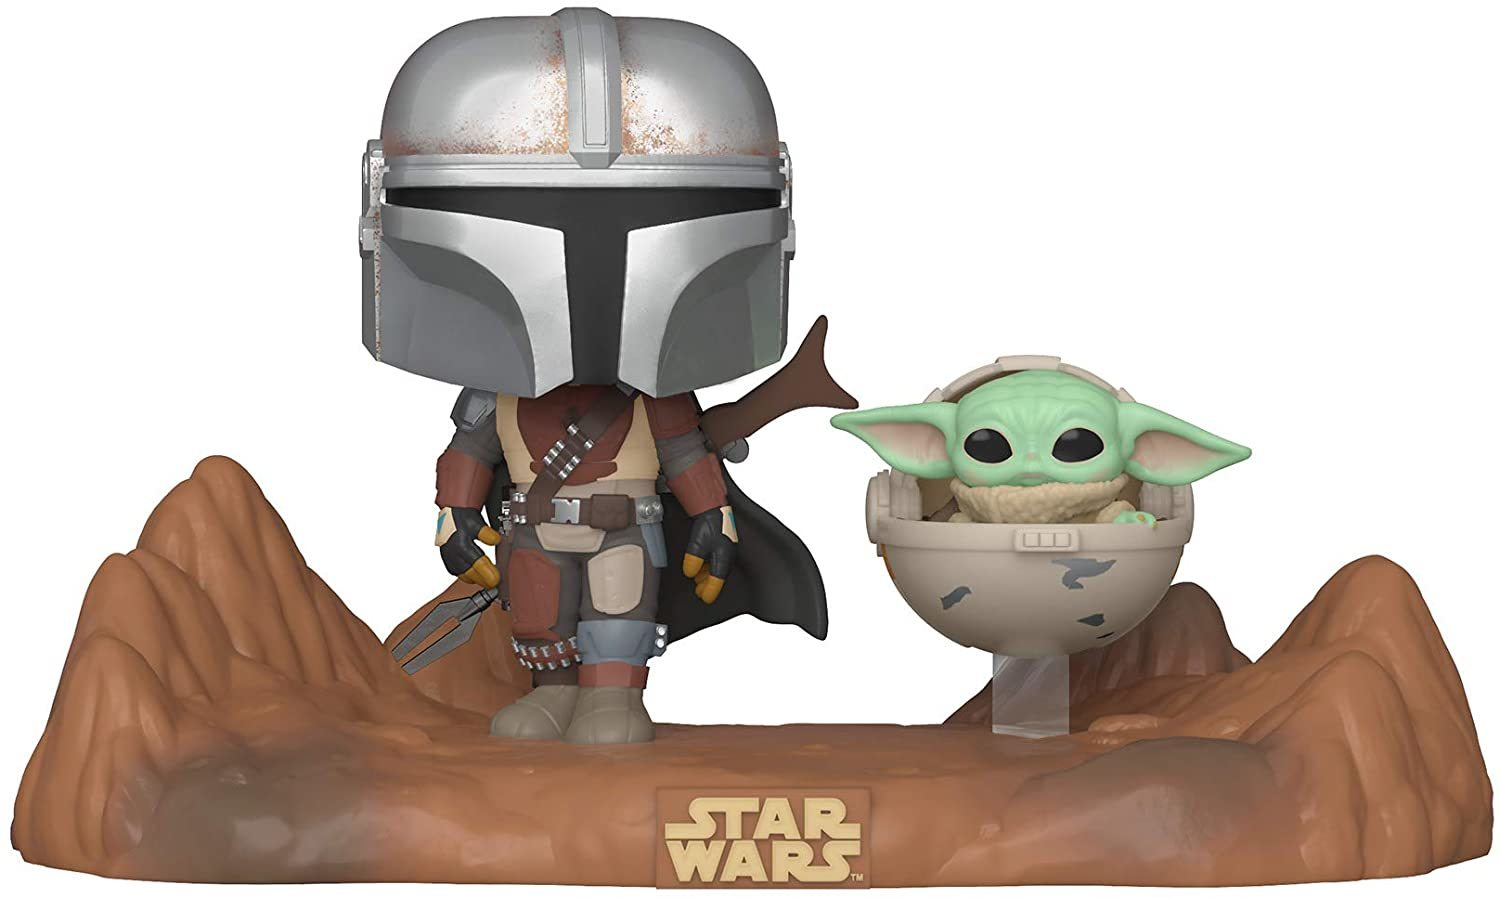 Star Wars: The Mandalorian (with The Child) - Pop! Television Moment Figure image